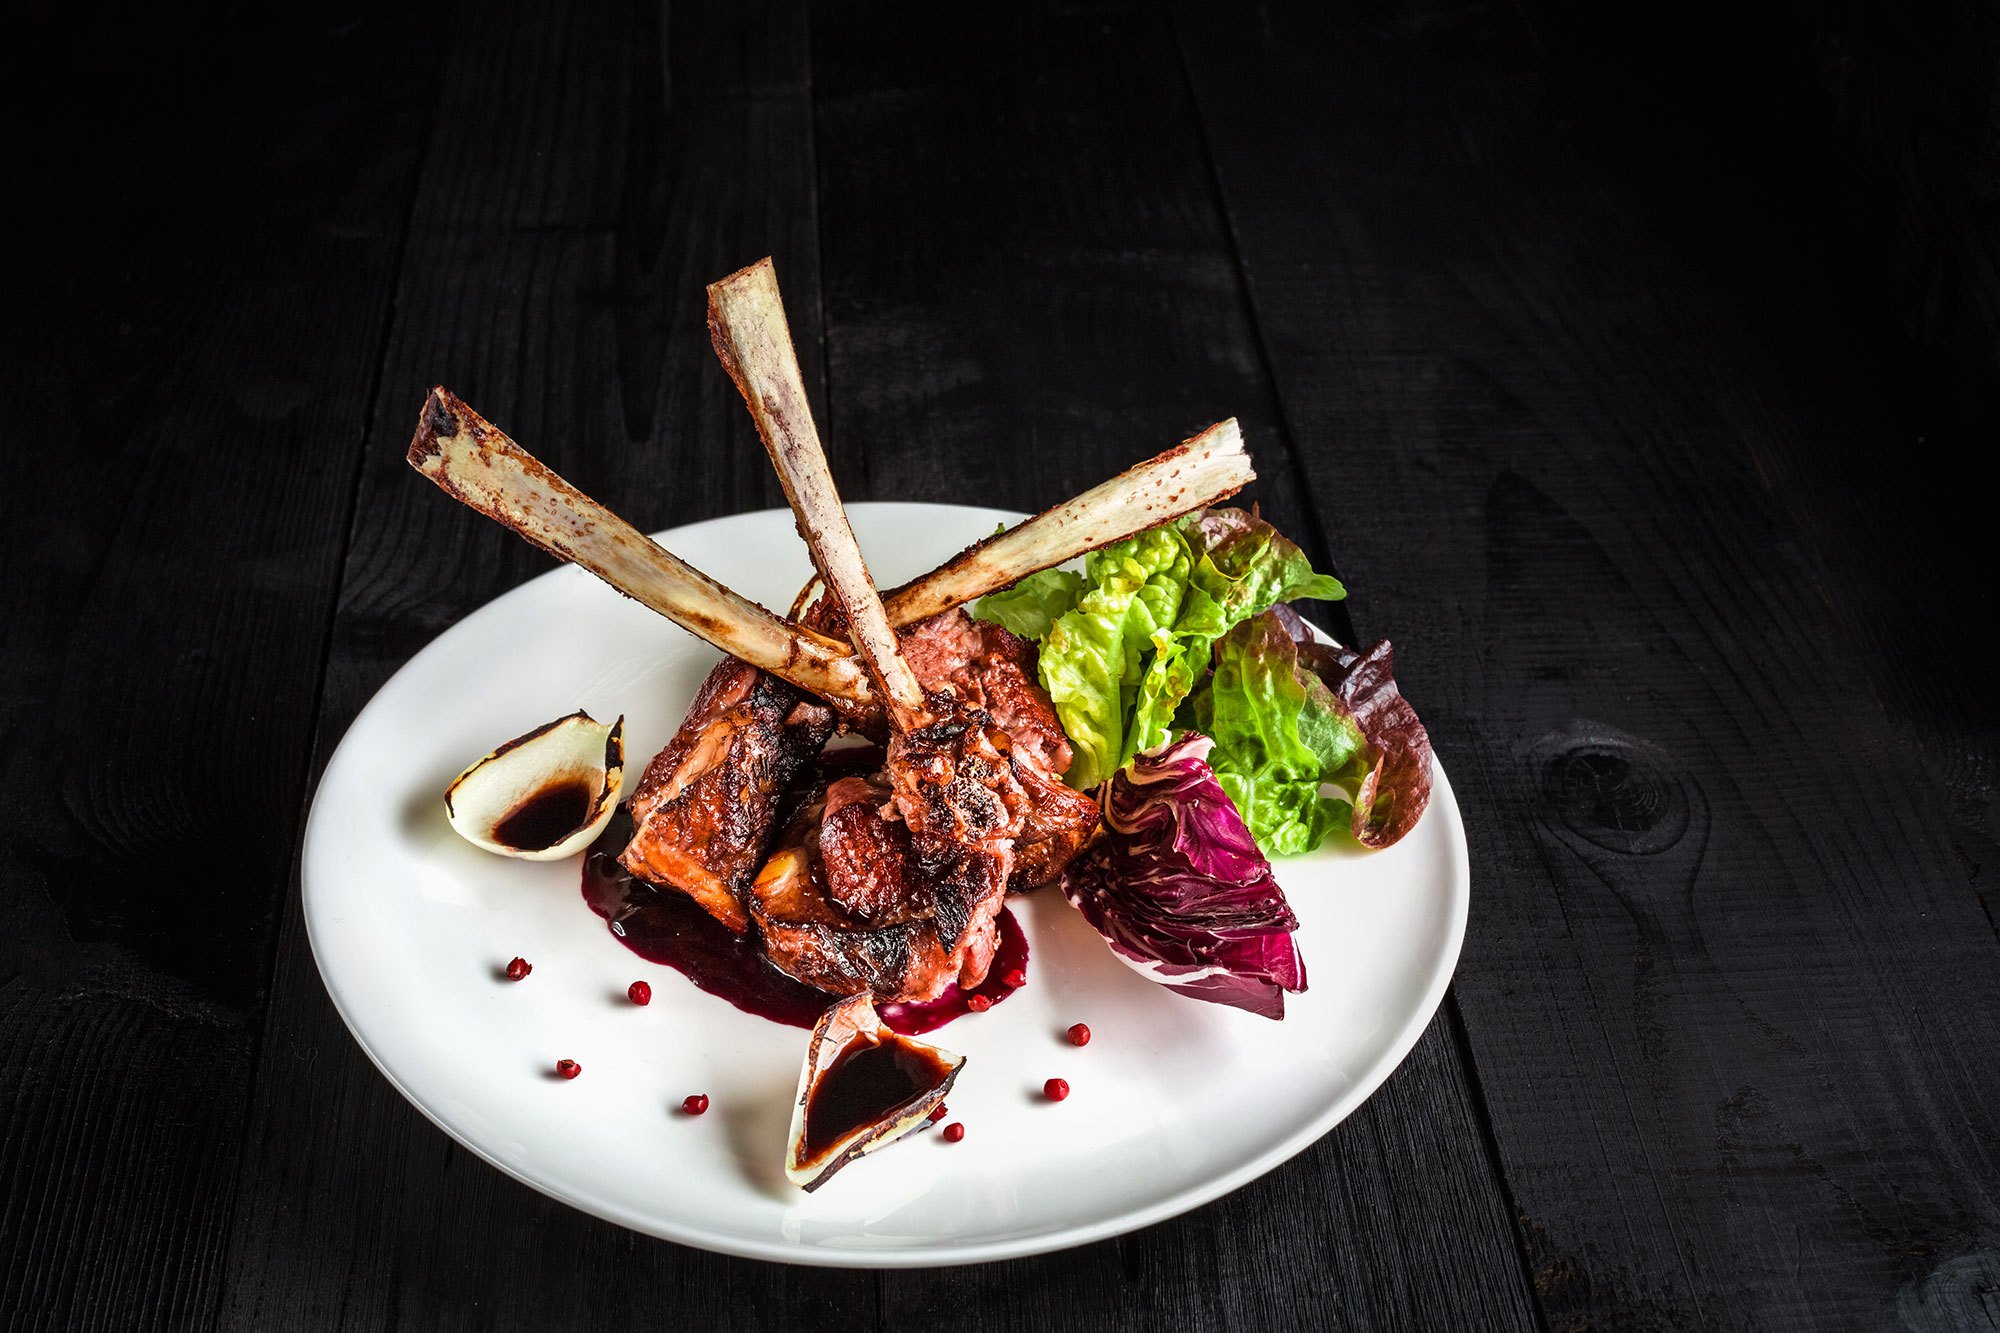 Gourmet-Main-Entree-Course-Grilled-rack-of-lamb